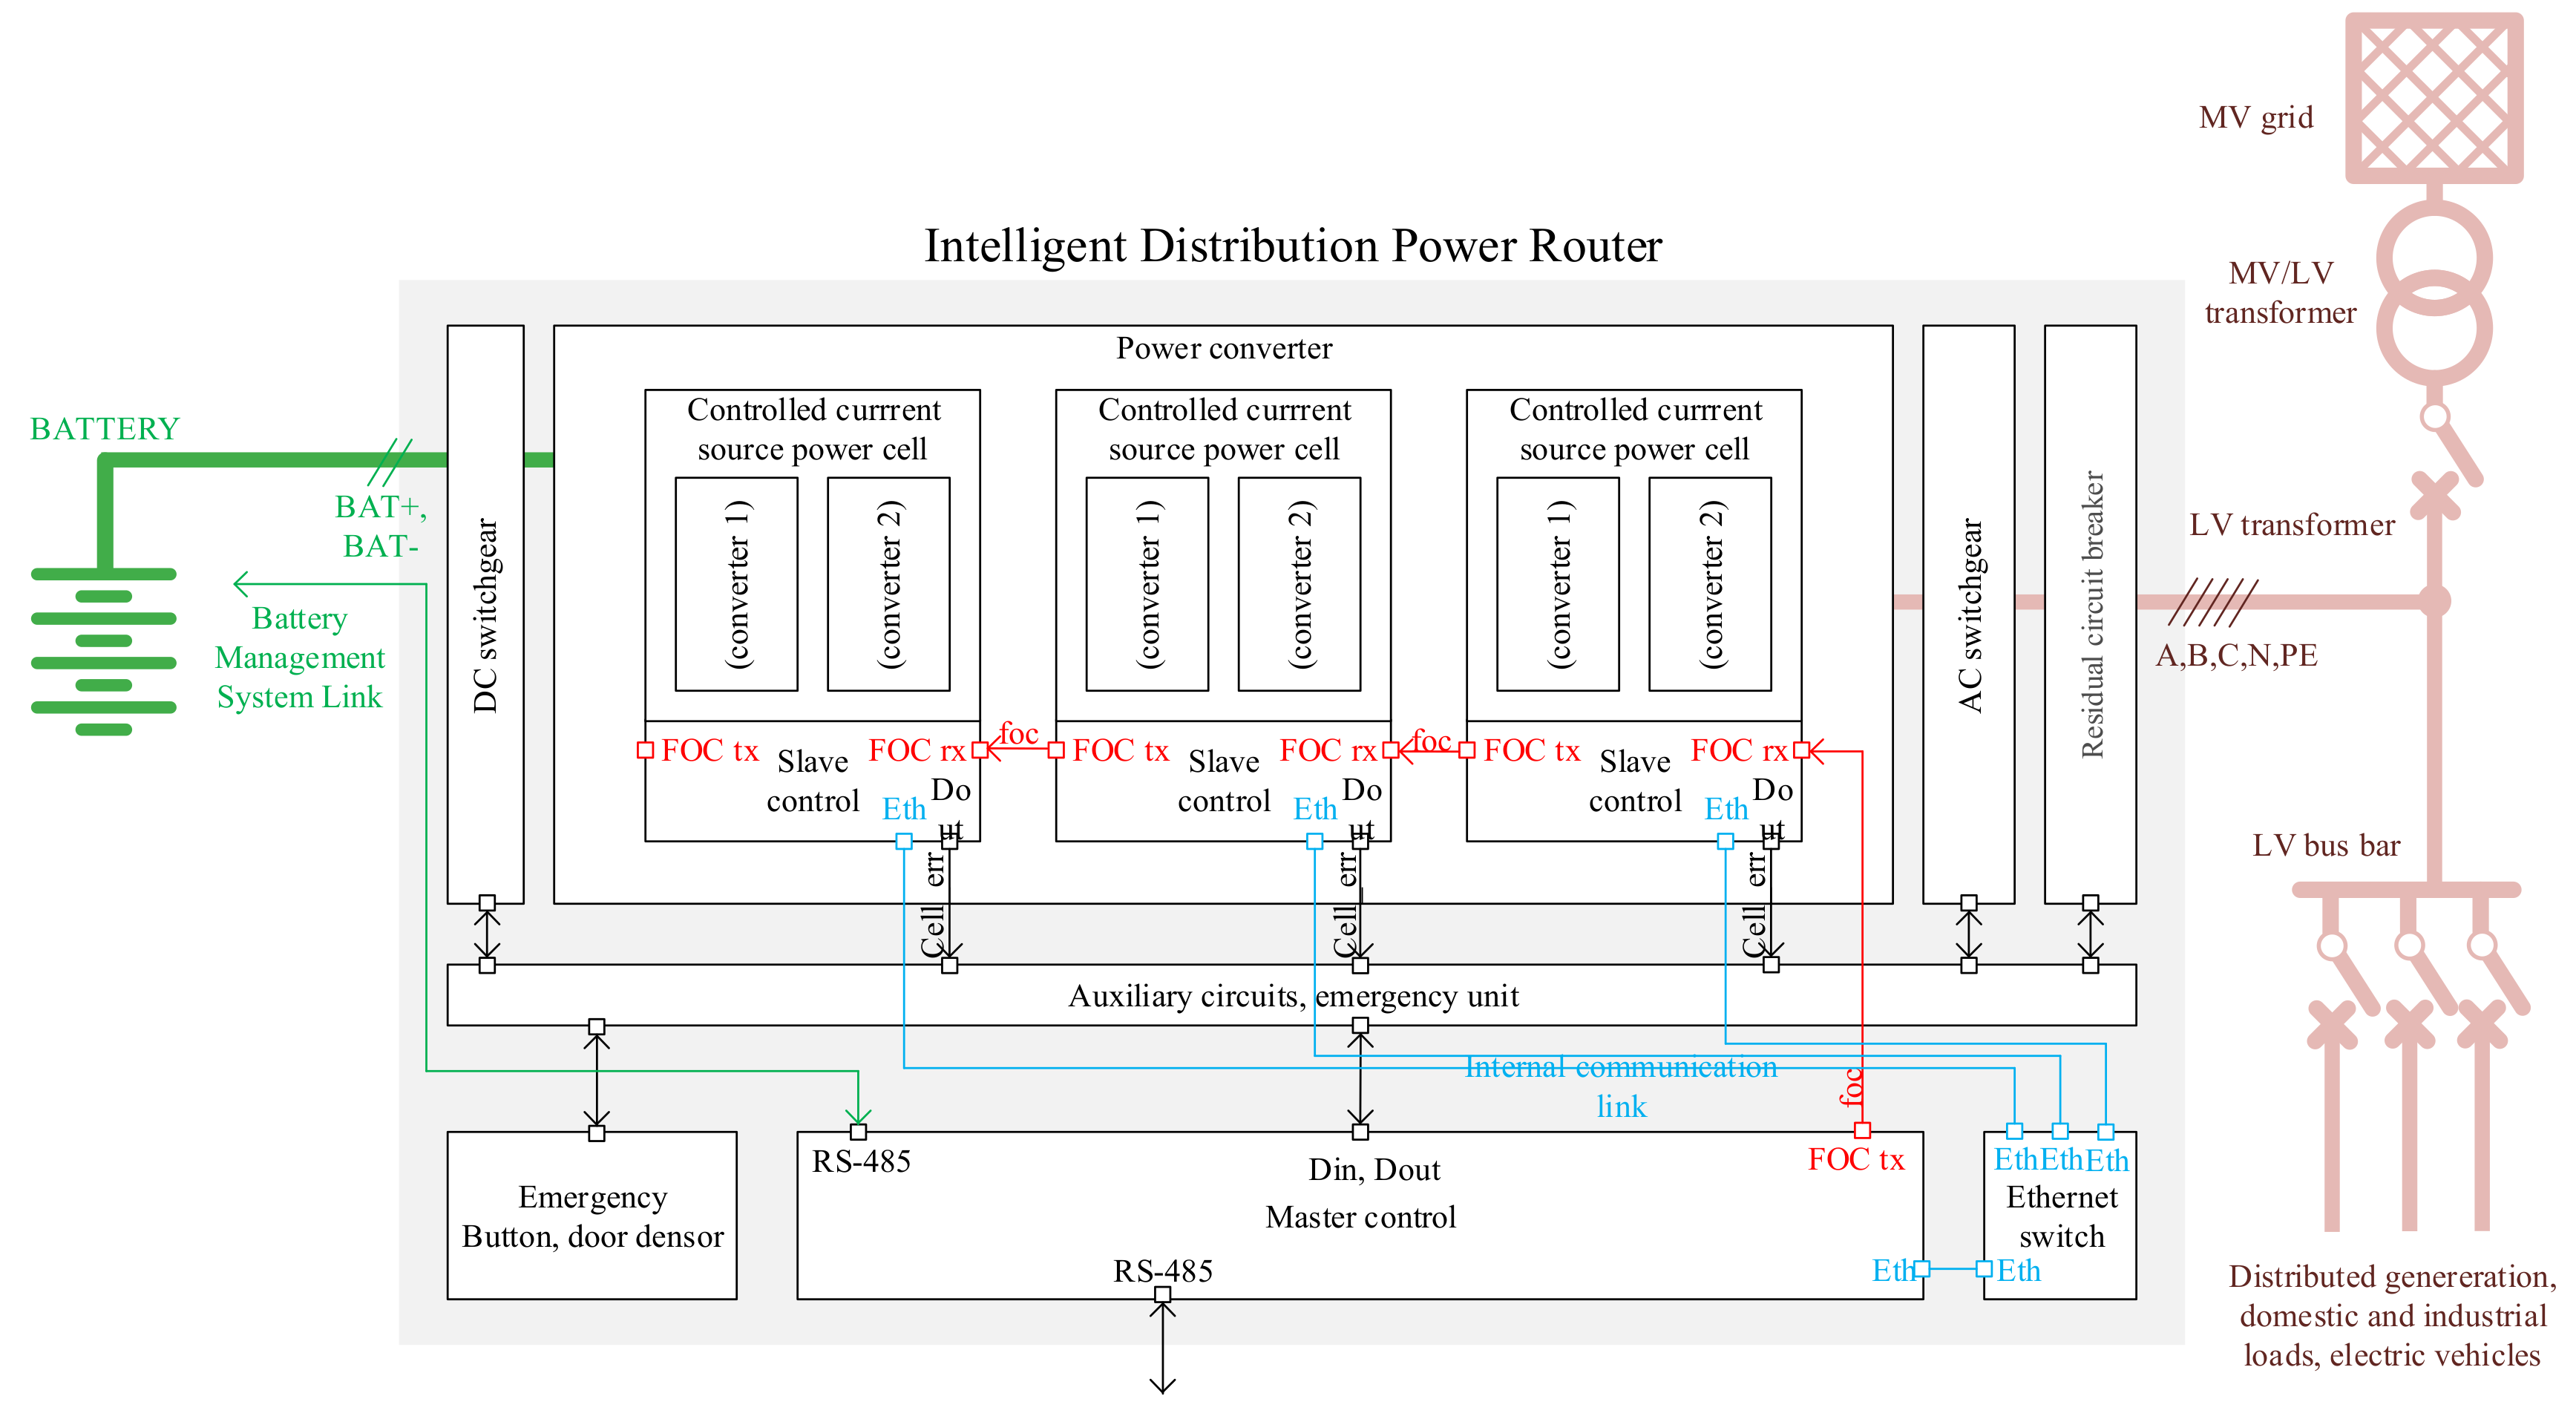 Energies Free Full Text Smart Grid Architecture For Rural Circuit Breaker Diagram Furthermore Mag Ic On 11 00844 G003